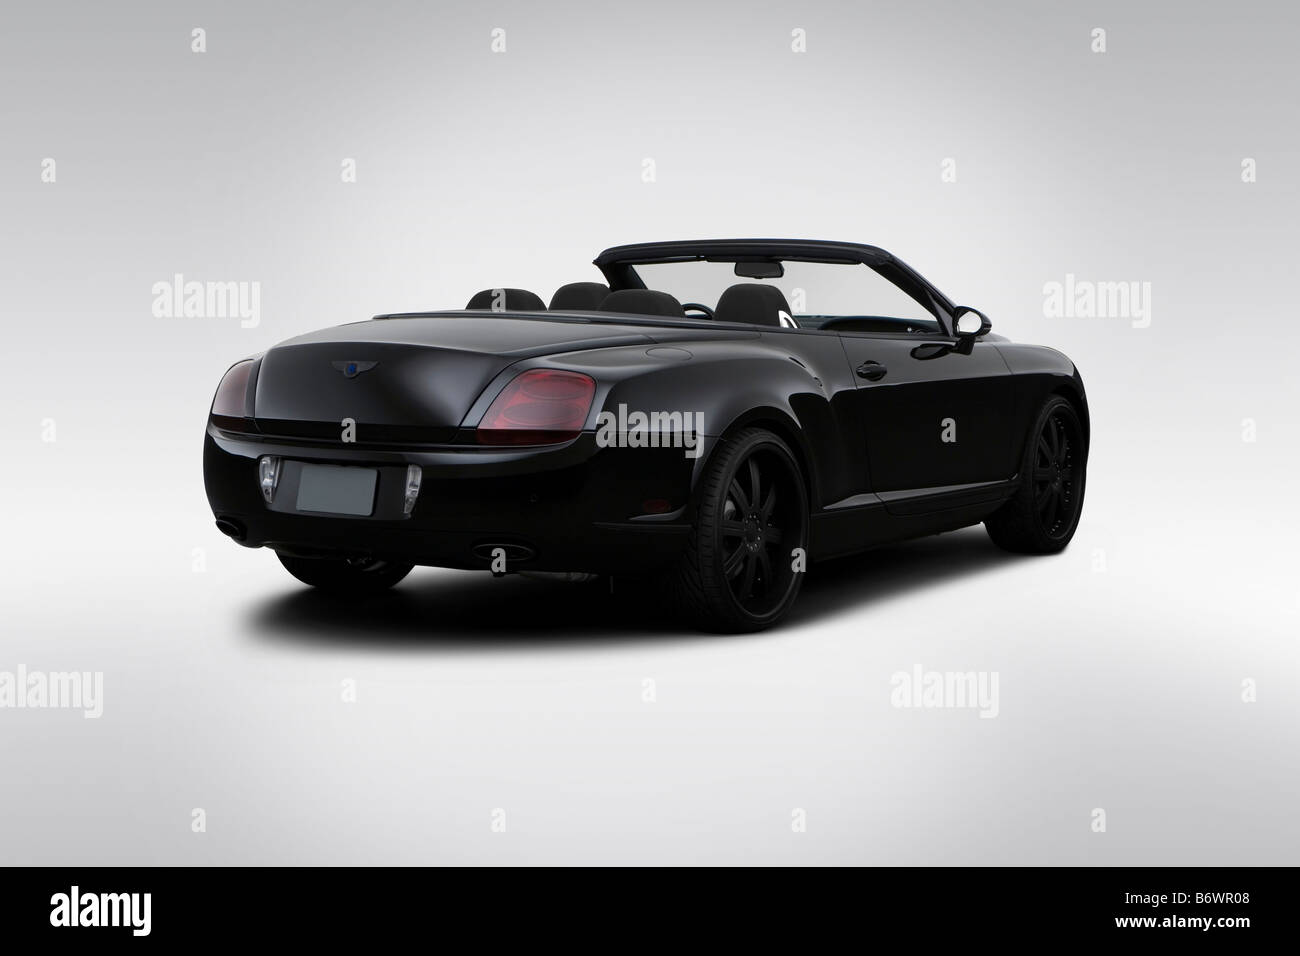 Black Bentley Convertible High Resolution Stock Photography And Images Alamy